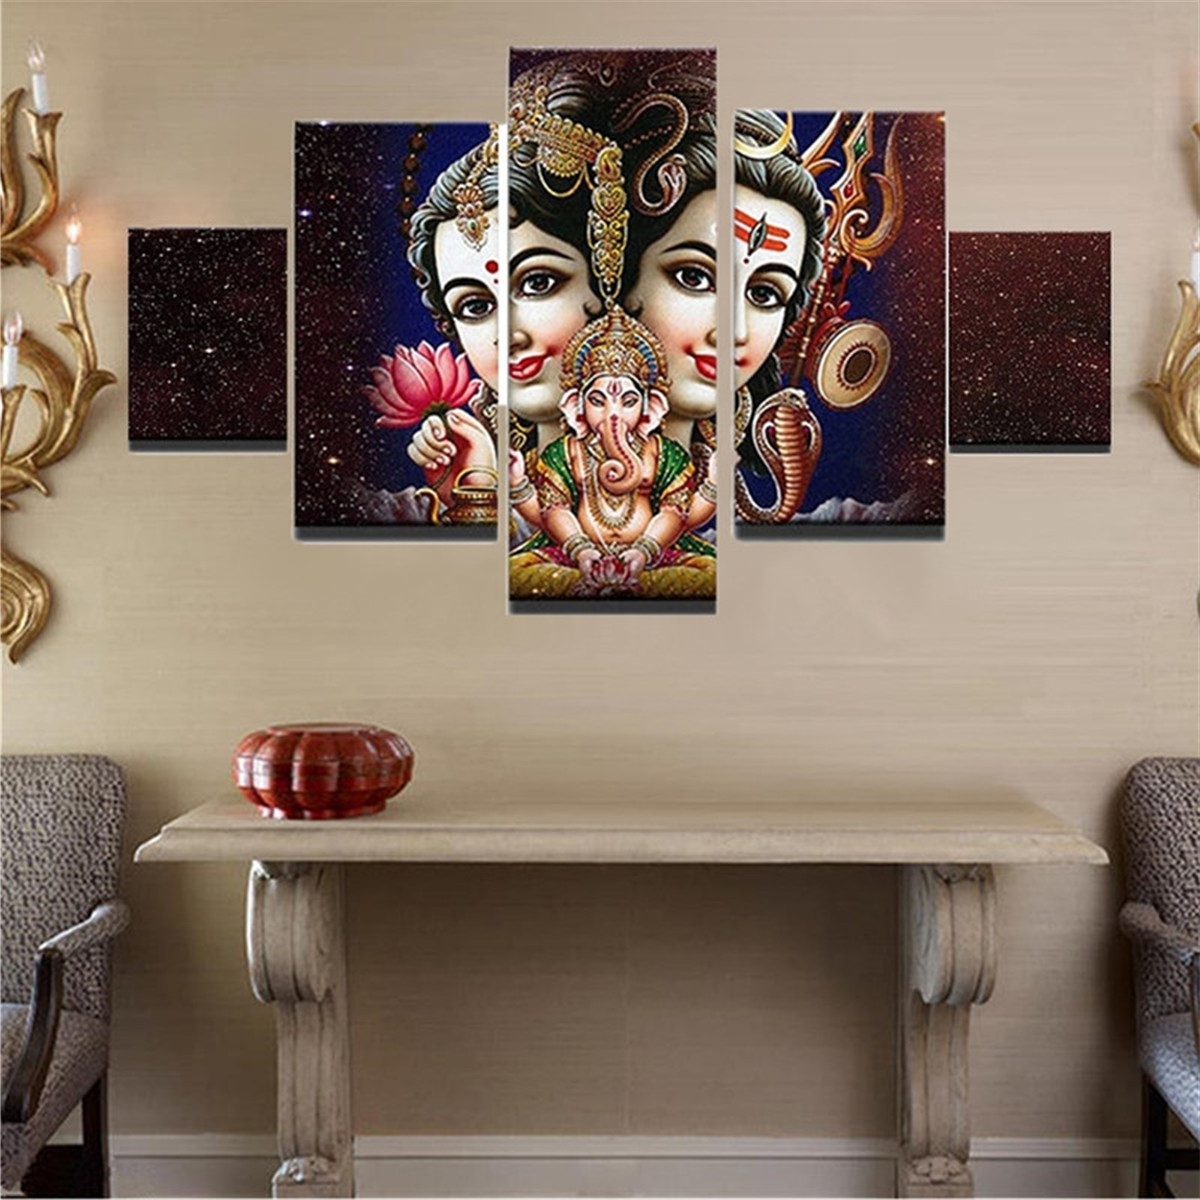 5Pcs Ganesha India Canvas Painting Print Modern Wall Art Poster In Trendy India Canvas Wall Art (View 3 of 15)